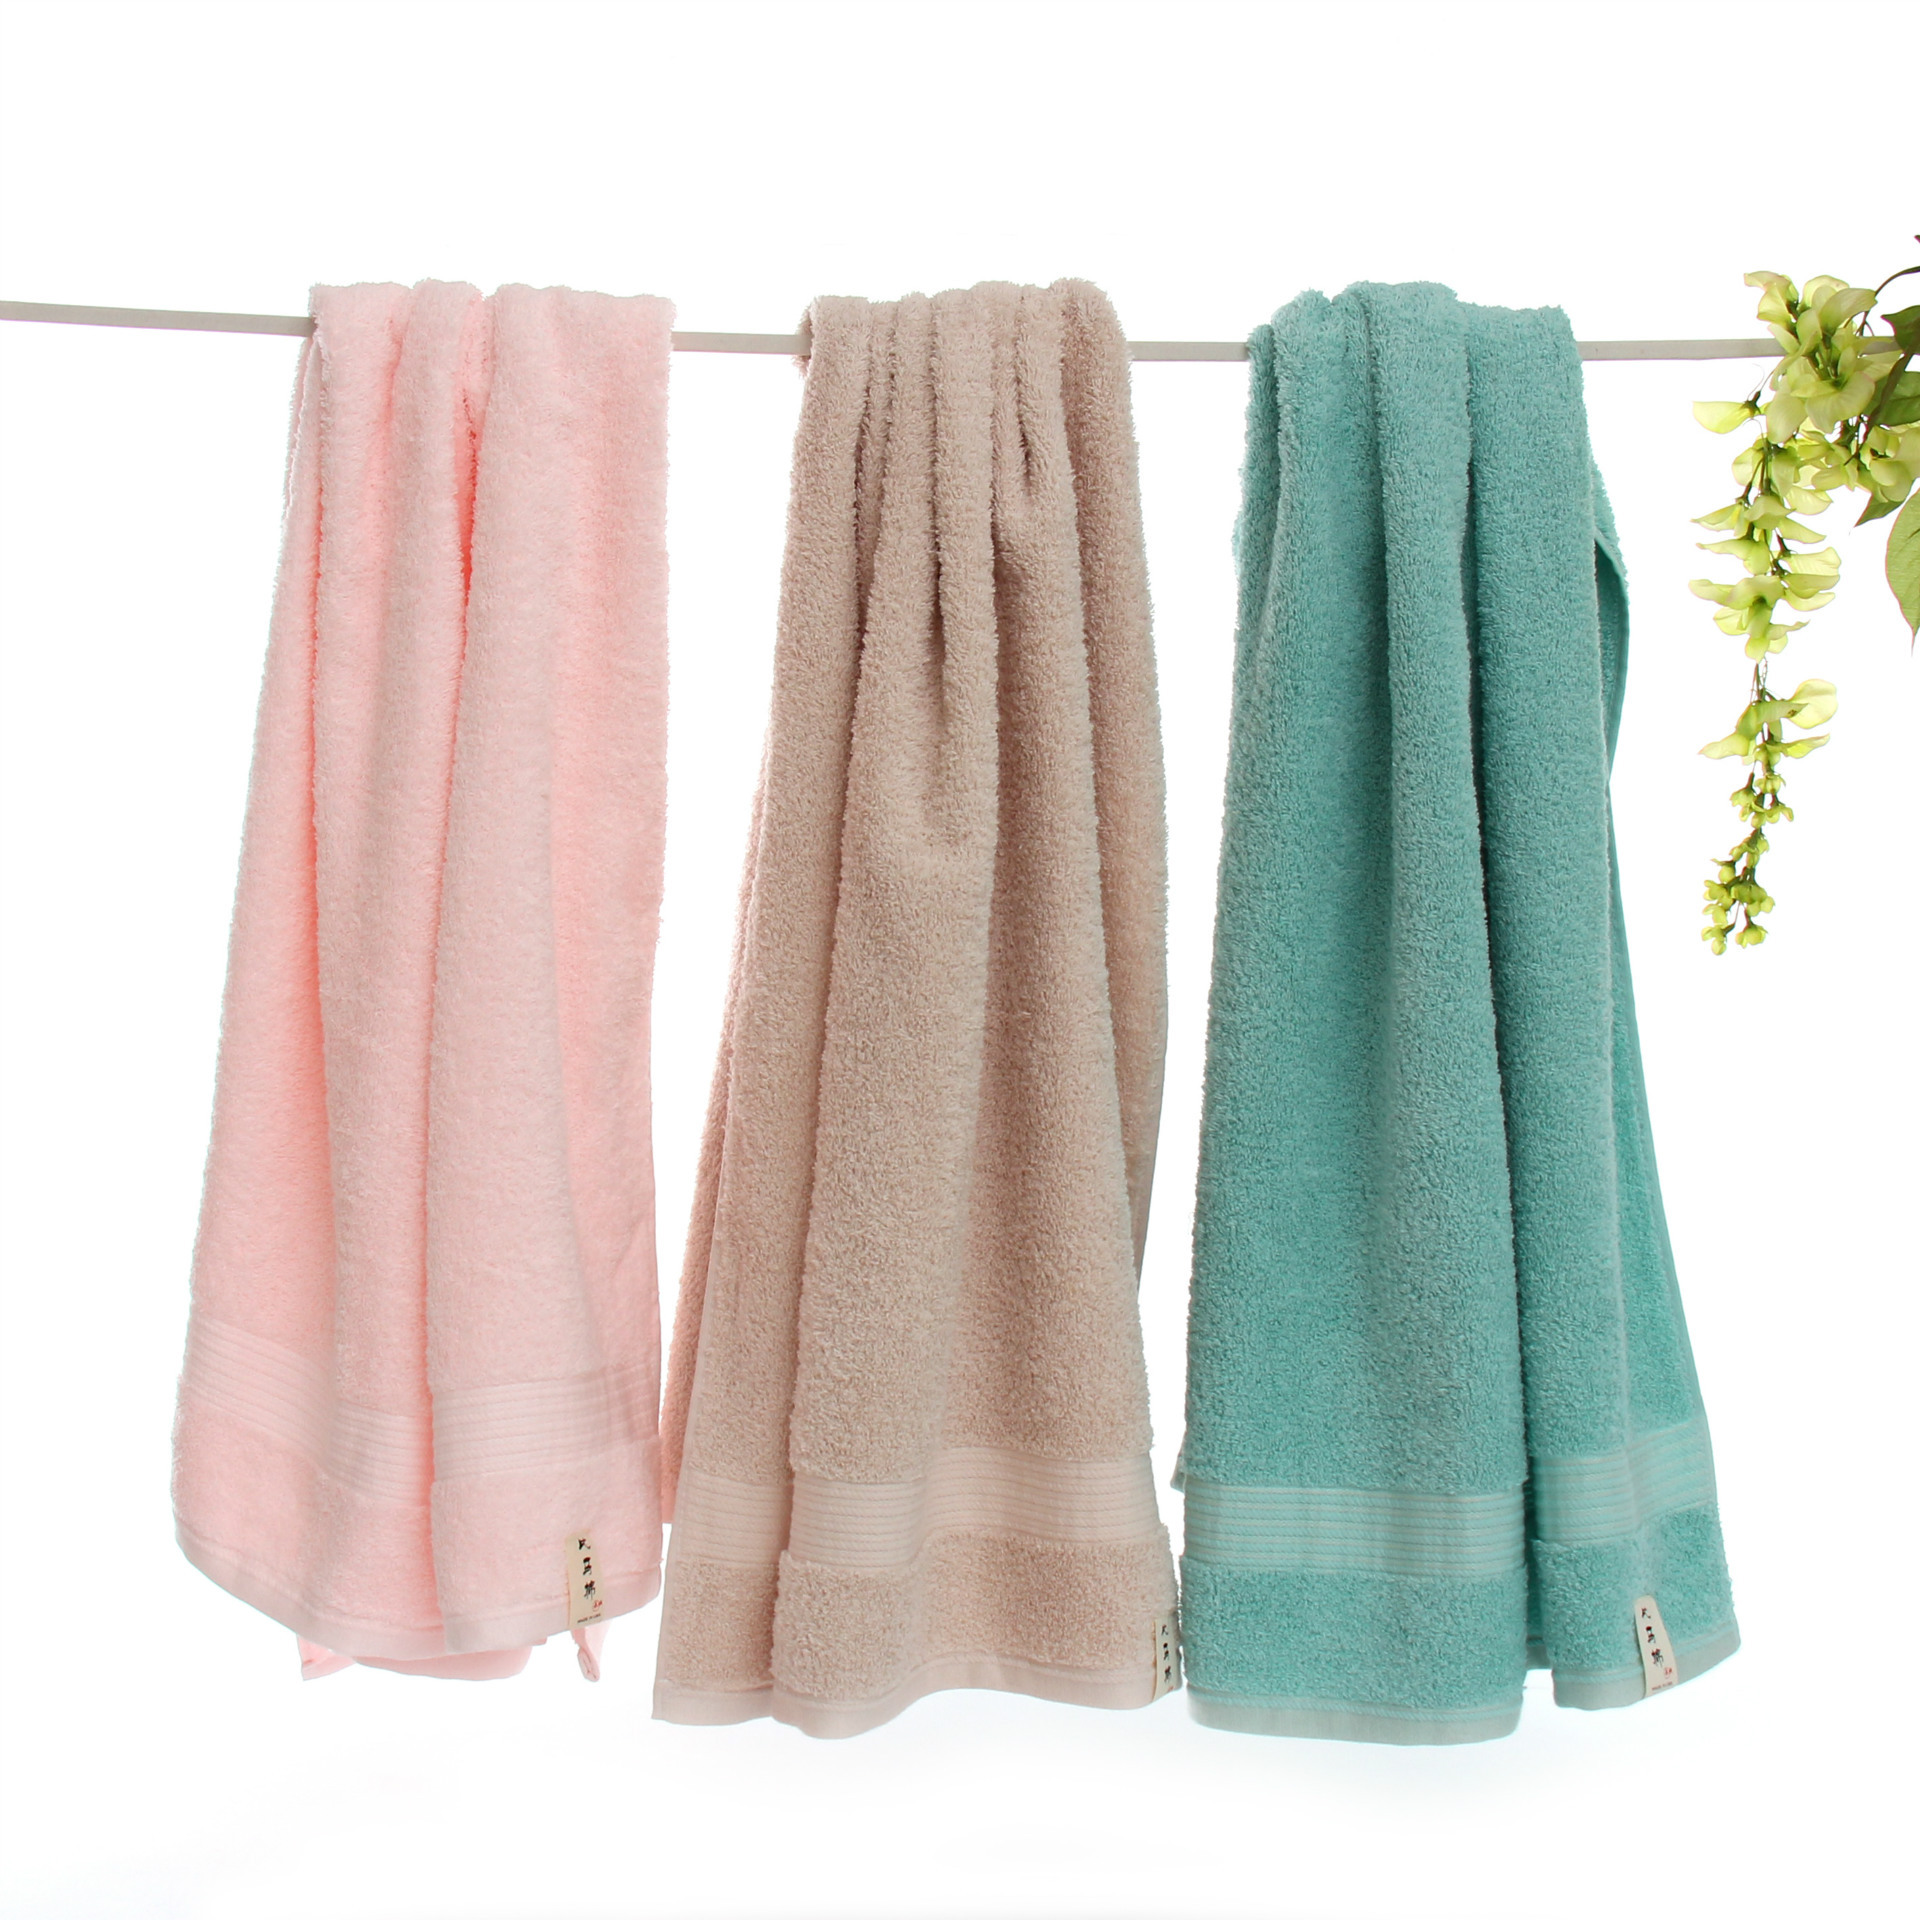 Clean and Classy Bath Towel for Daily Use